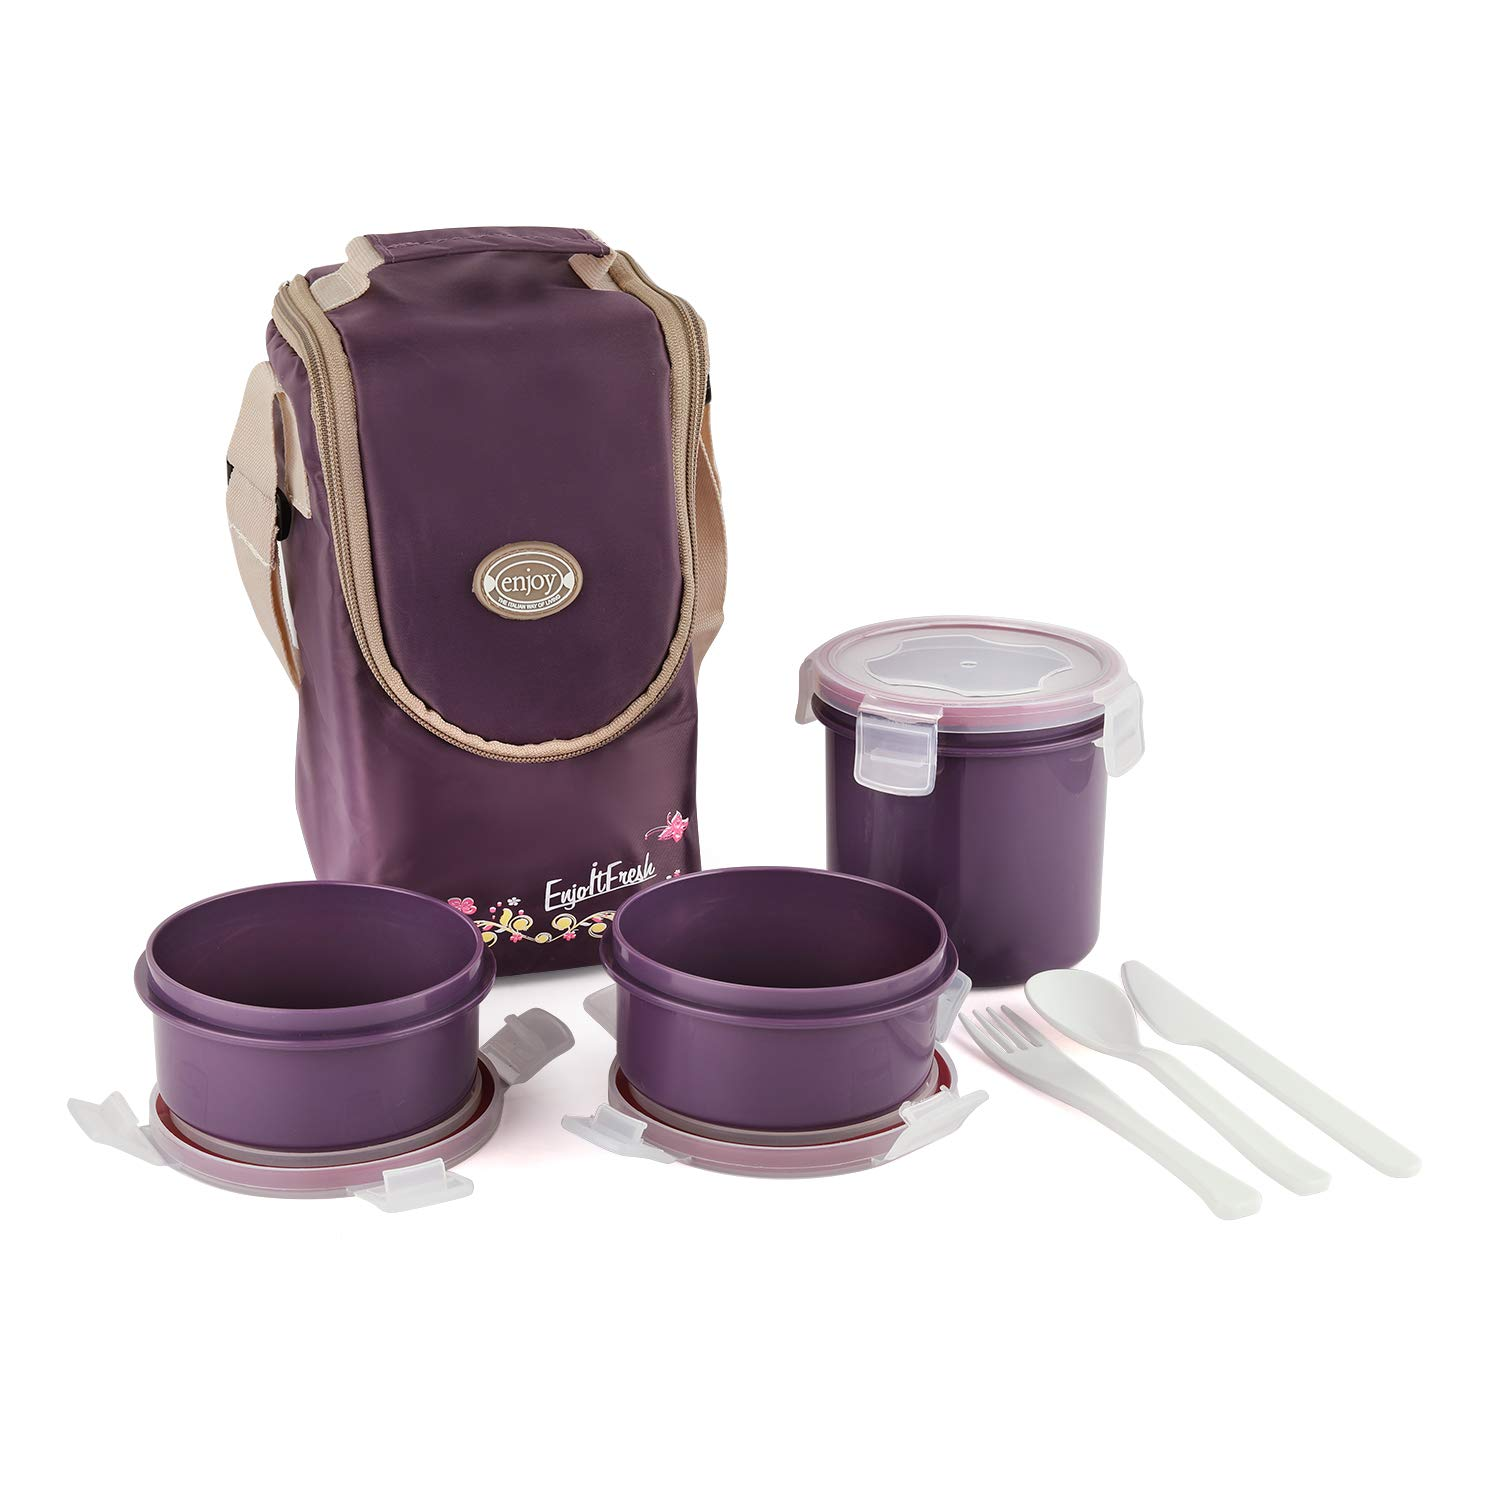 Cello Enjoy Plastic Lunch Box with 3 Container Fabric Bag Maroon